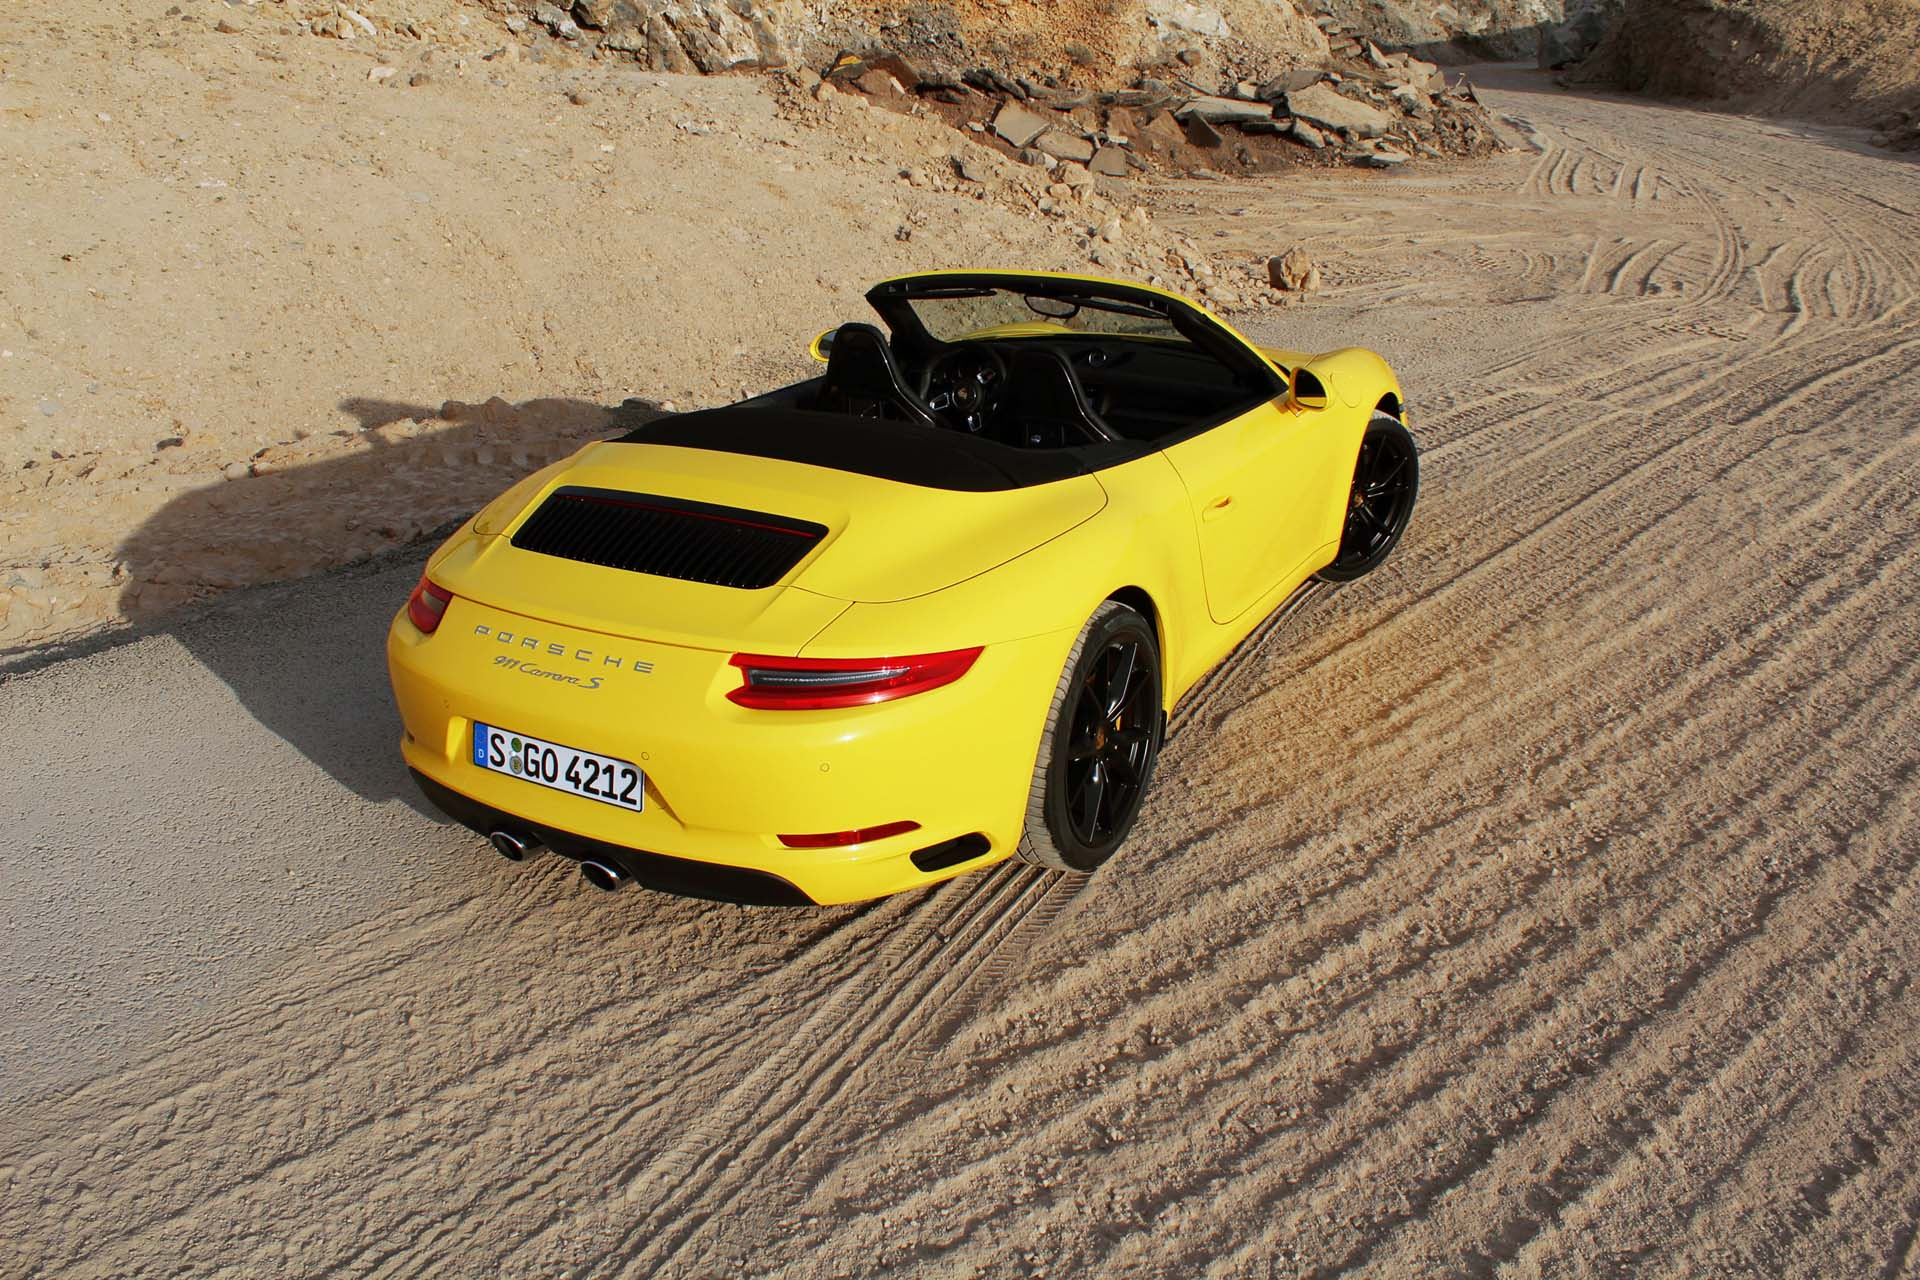 It's not all about the PDK twin-clutch automatic. The seven-speed manual has been revised for 2017 and it gets a lighter effort clutch. A fabulous gearbox. This manual-equipped yellow S Cabriolet was my favourite of the day.